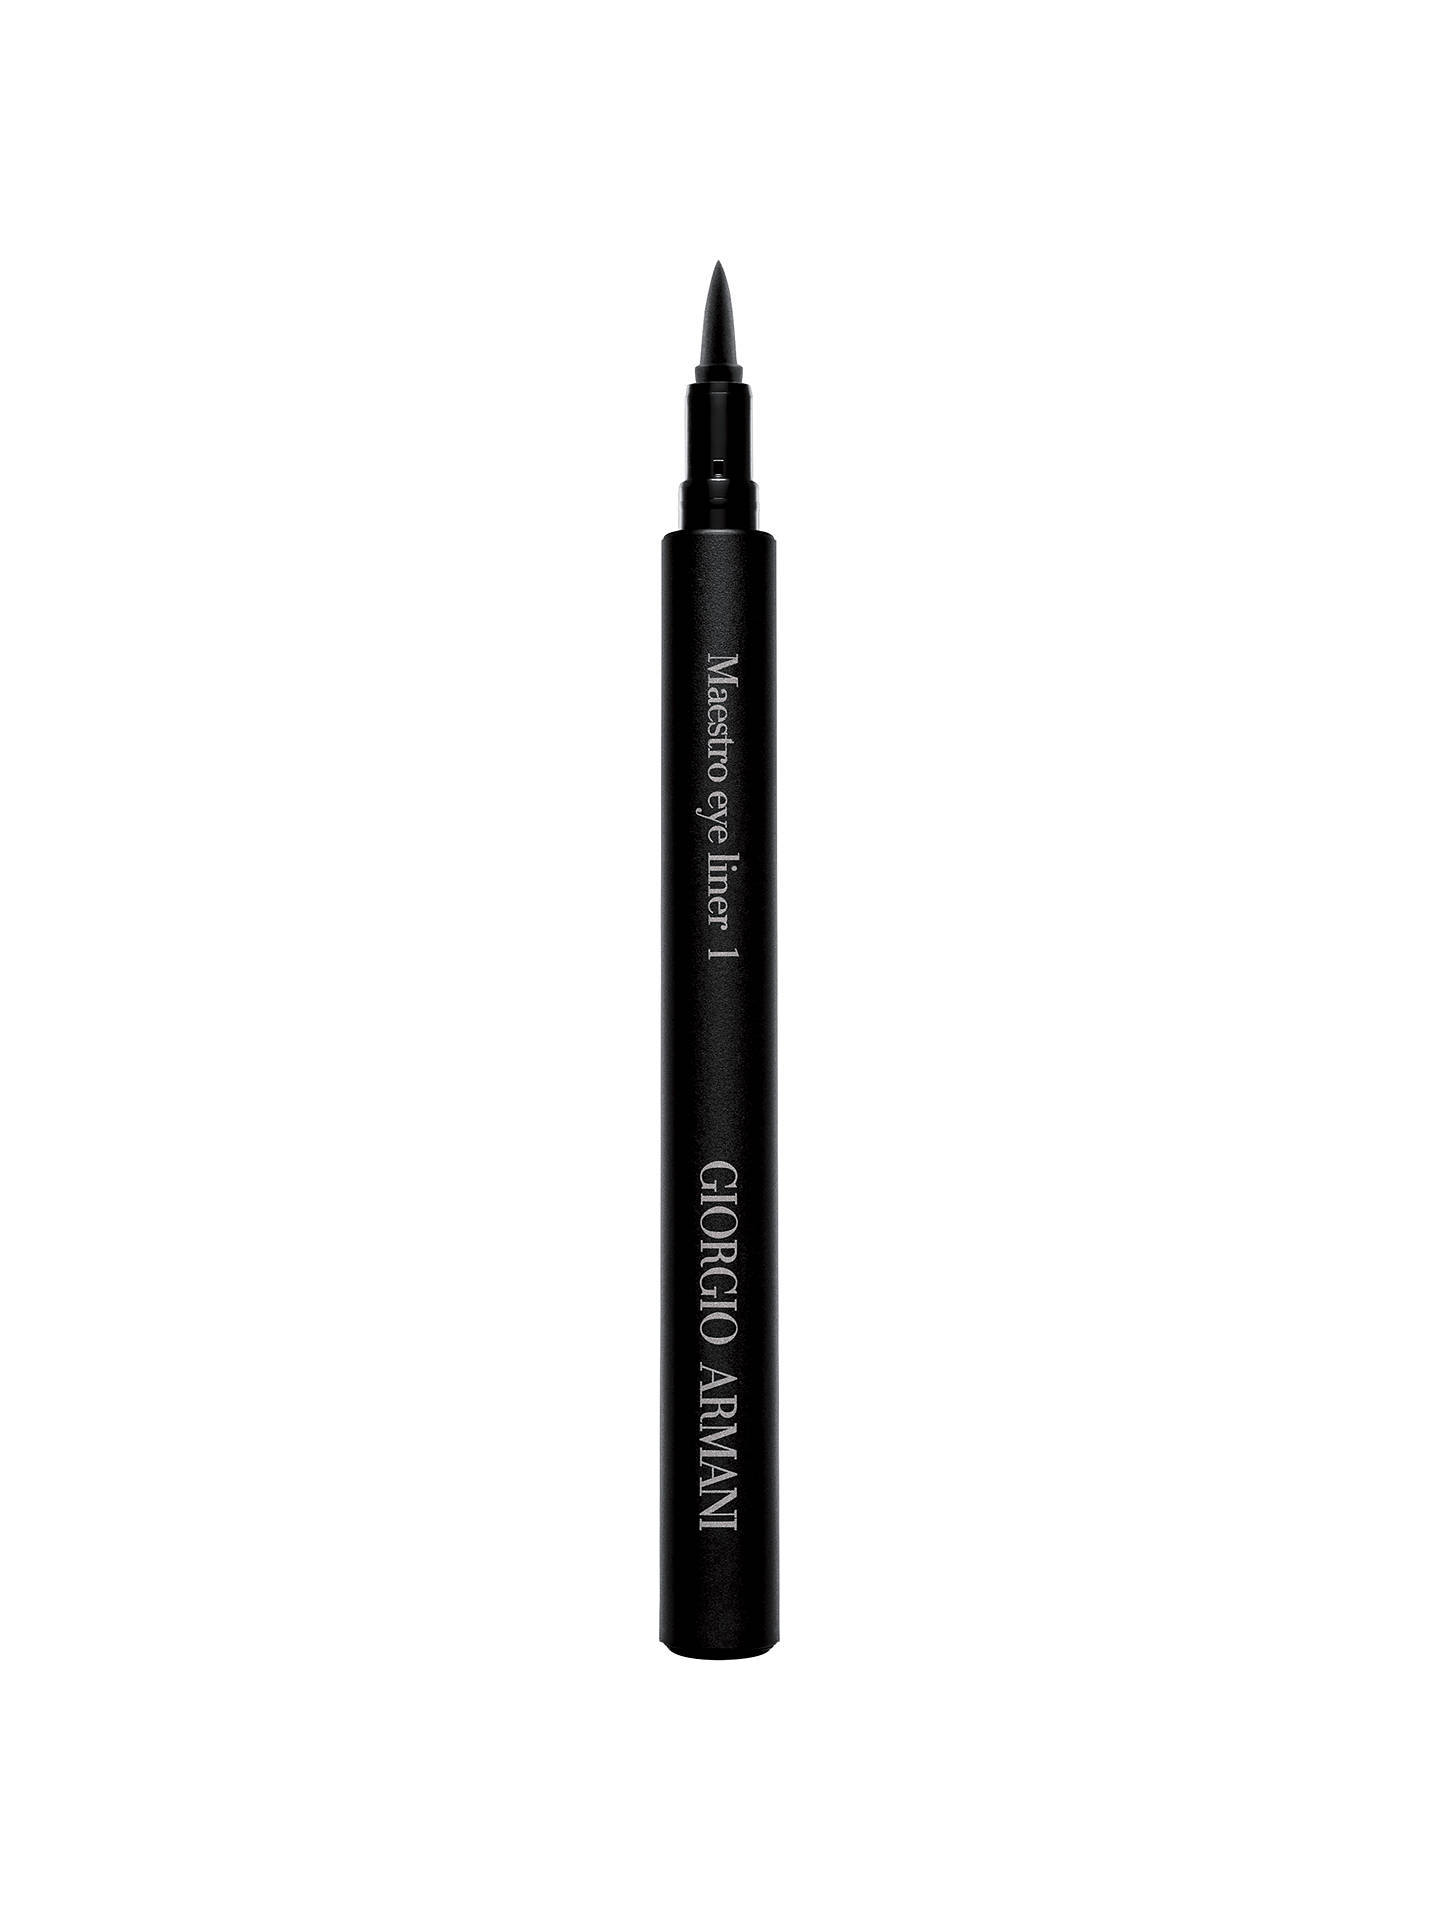 Buy Giorgio Armani Maestro Eye Liner, 01 Online at johnlewis.com